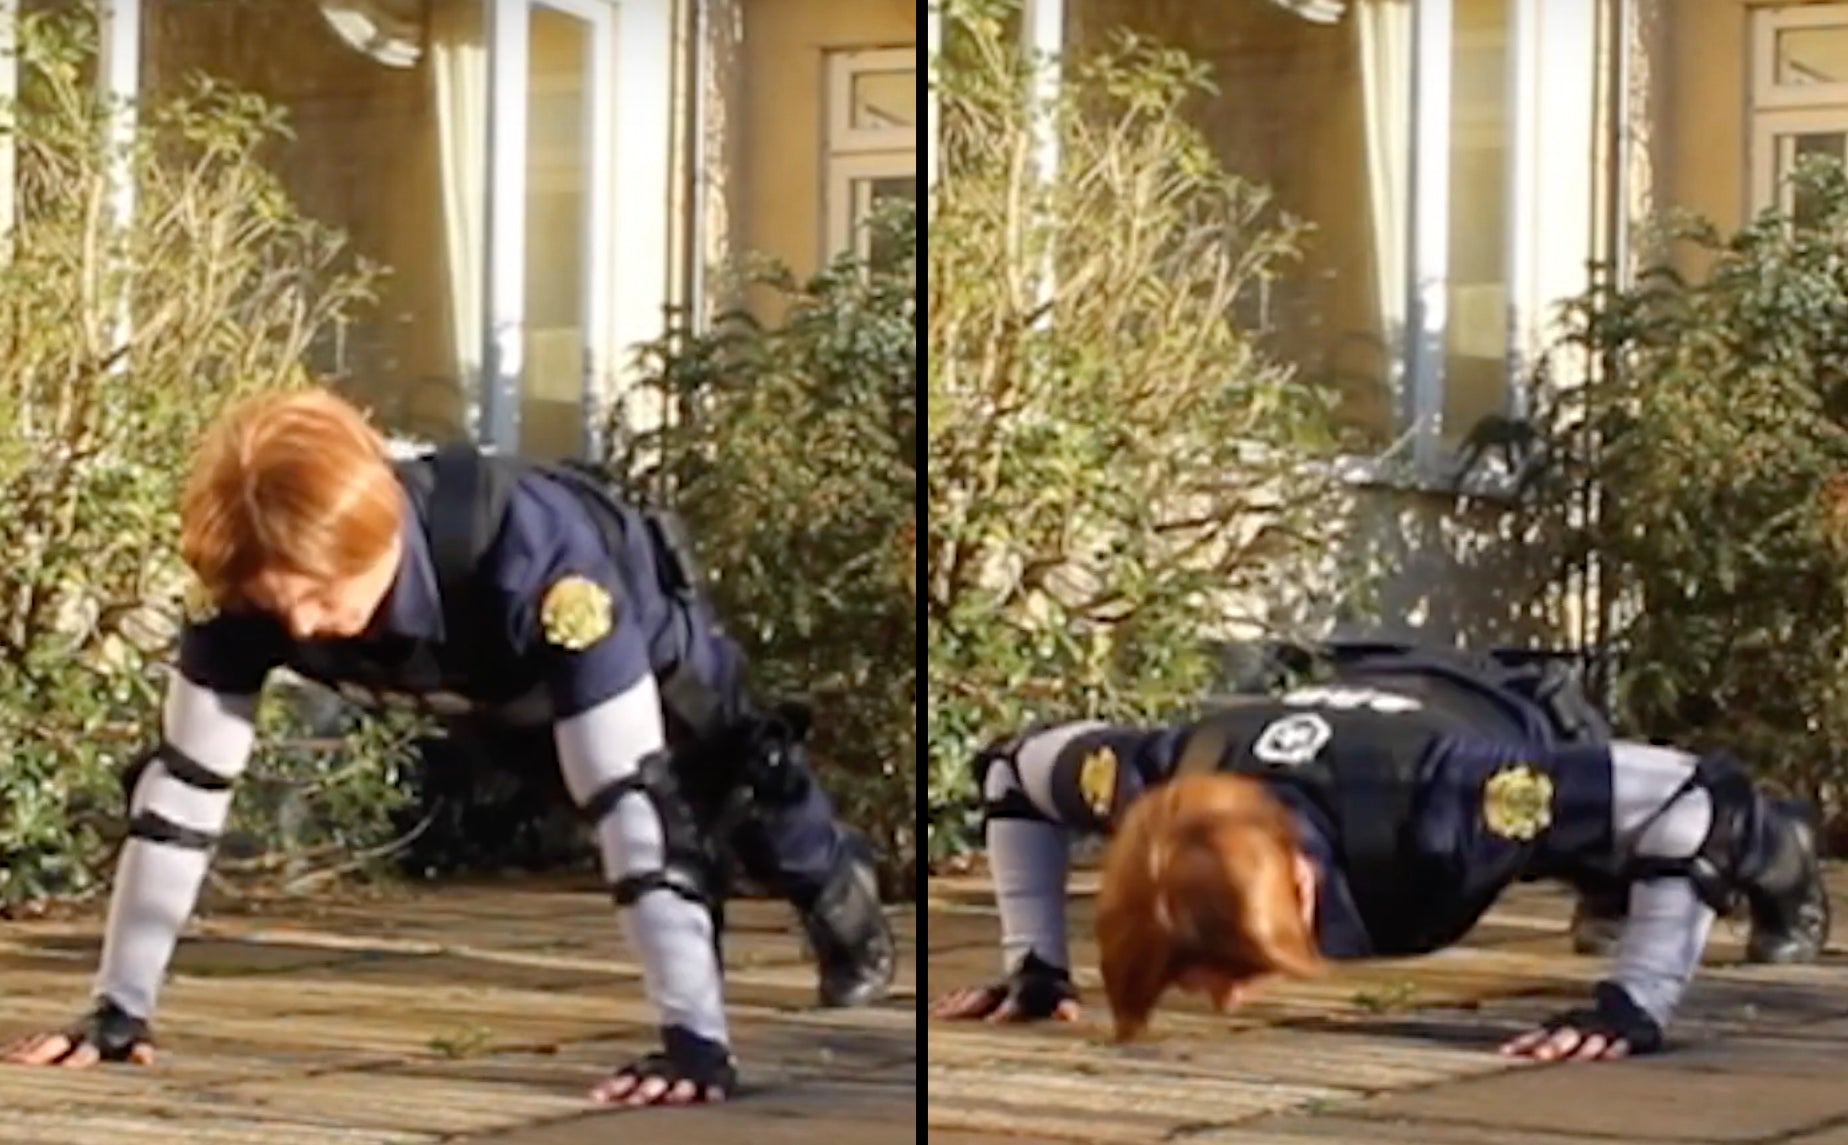 Leon S. Kennedy Resident Evil 2 Remake cosplay teaching the push up for a raccoon city fitness workout